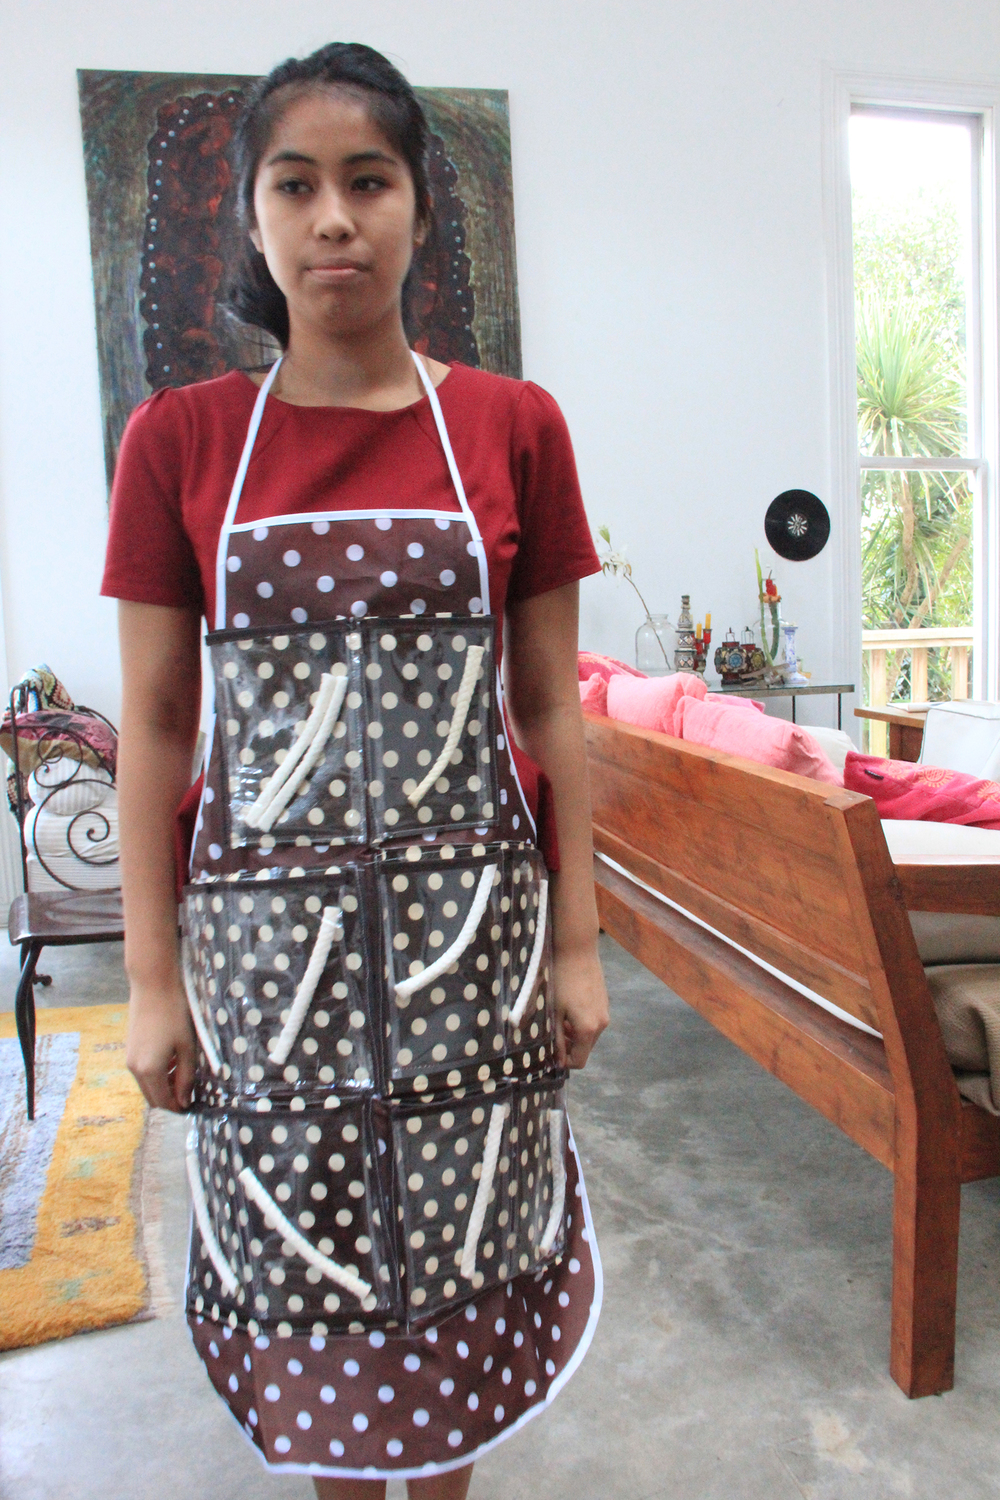 Jane Nimsoongnem models the perfume stick apron